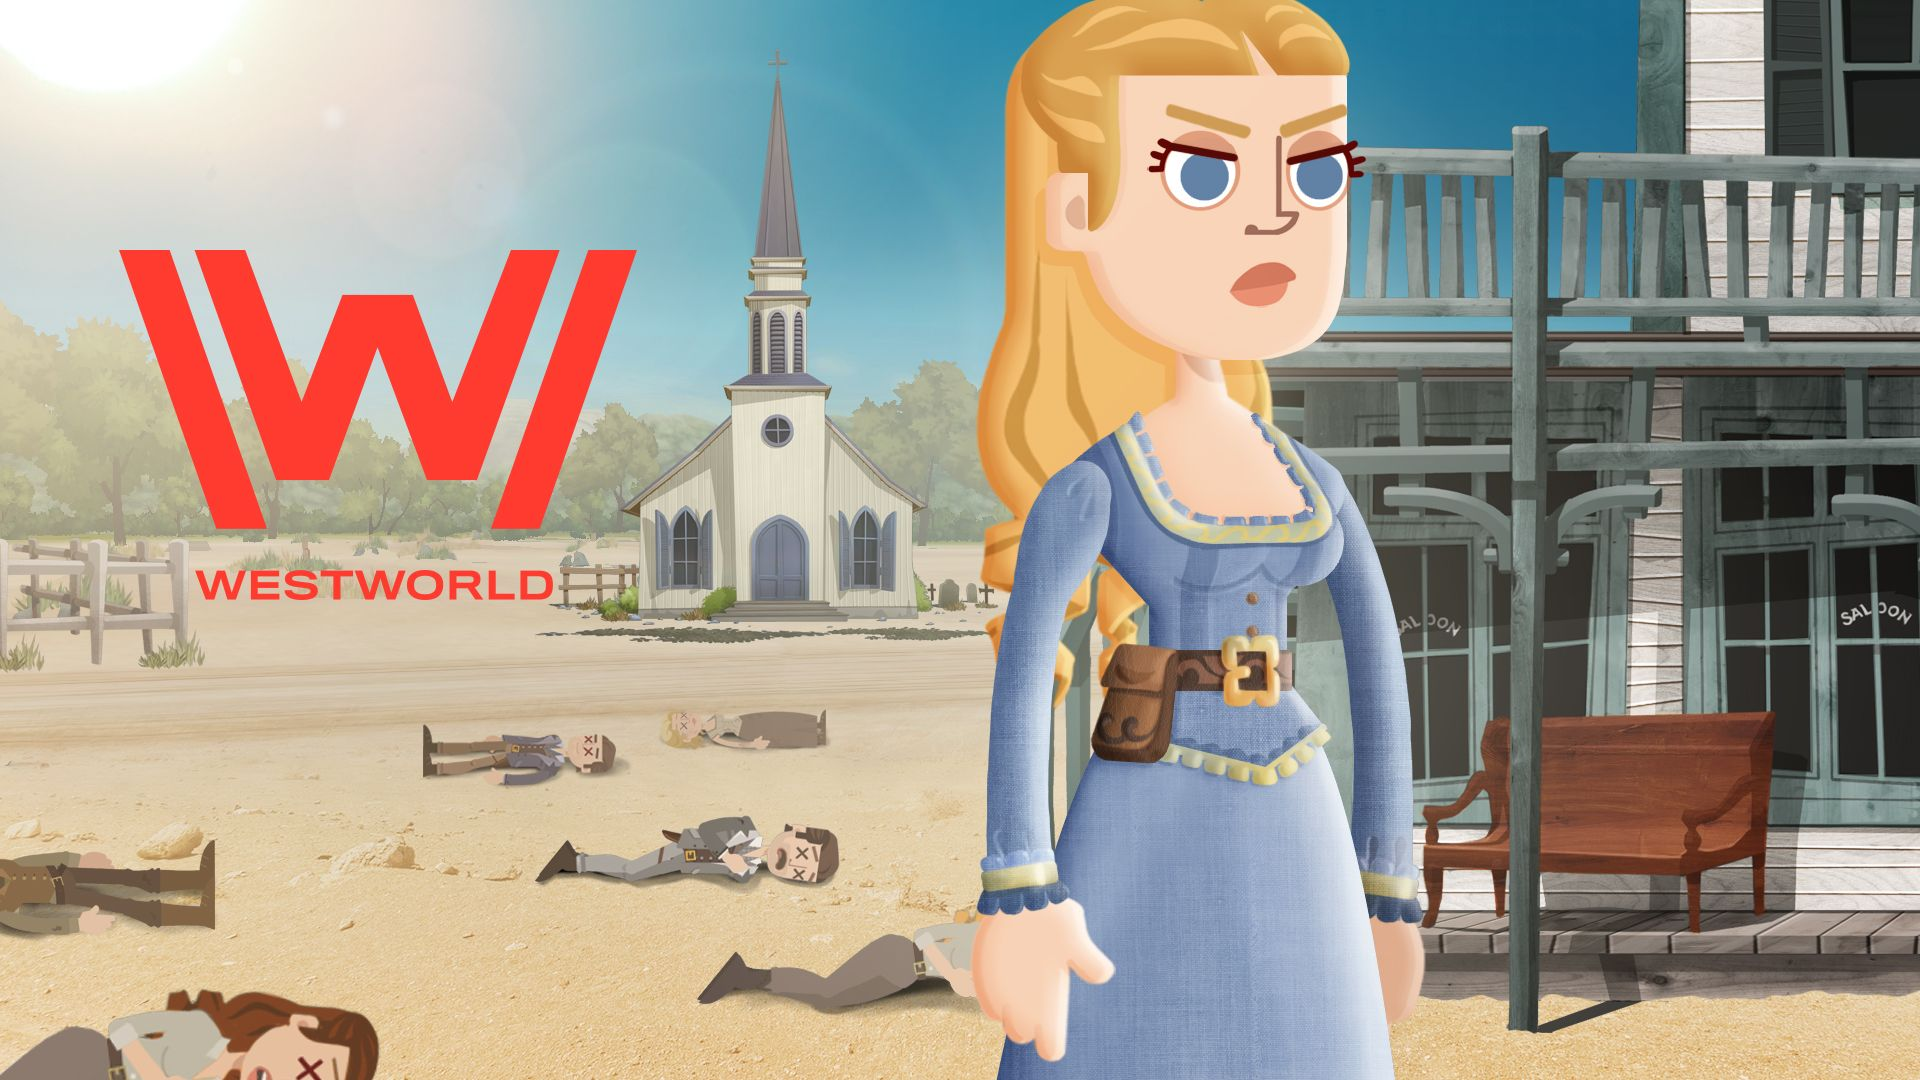 Westworld game sparks lawsuit: Fallout makers say it's 'a blatant rip-off'